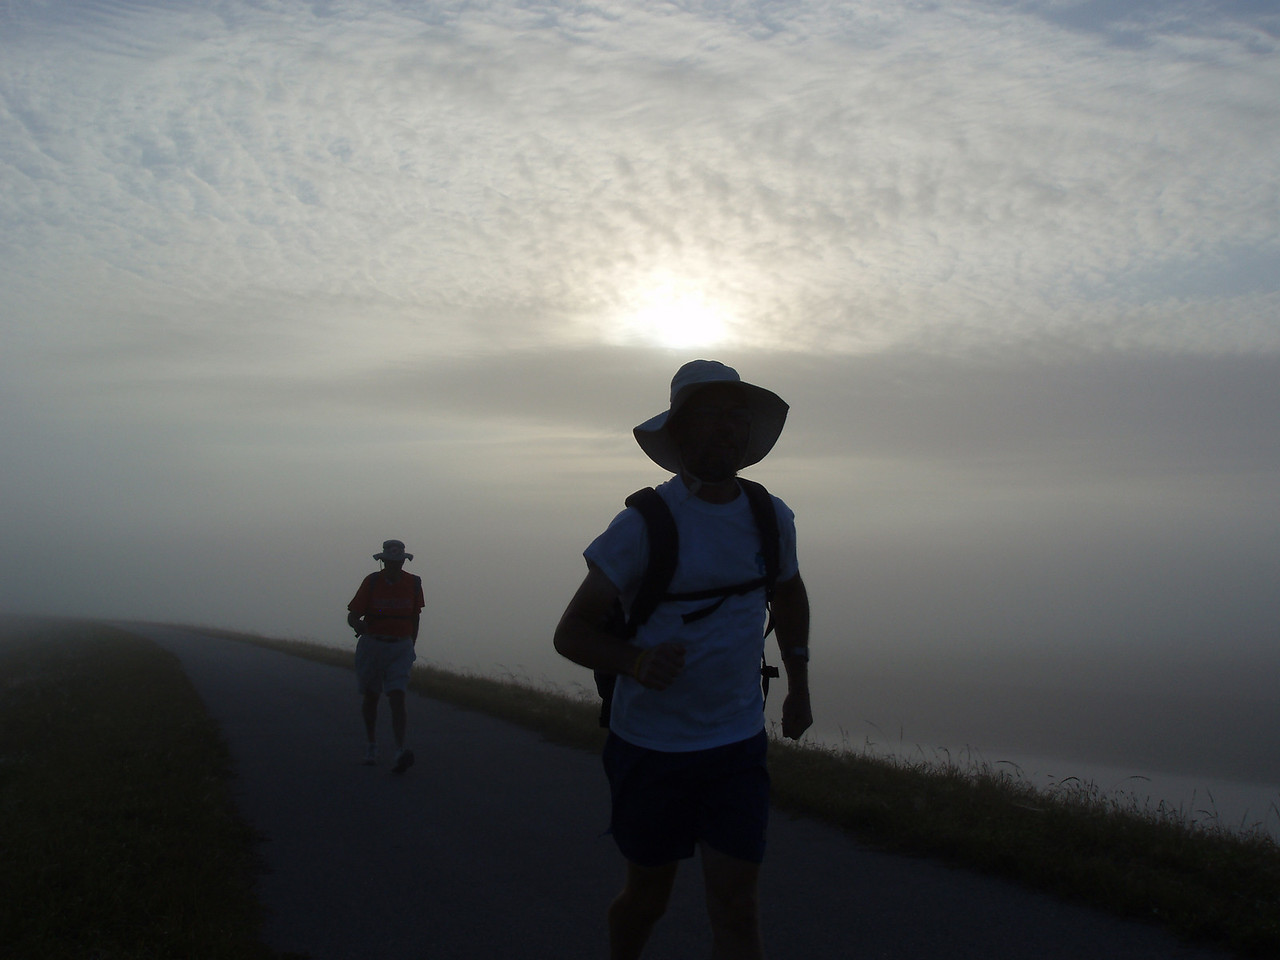 Hikers on a misty morning<br /> PHOTO CREDIT: Robert Coveney / Florida Trail Association